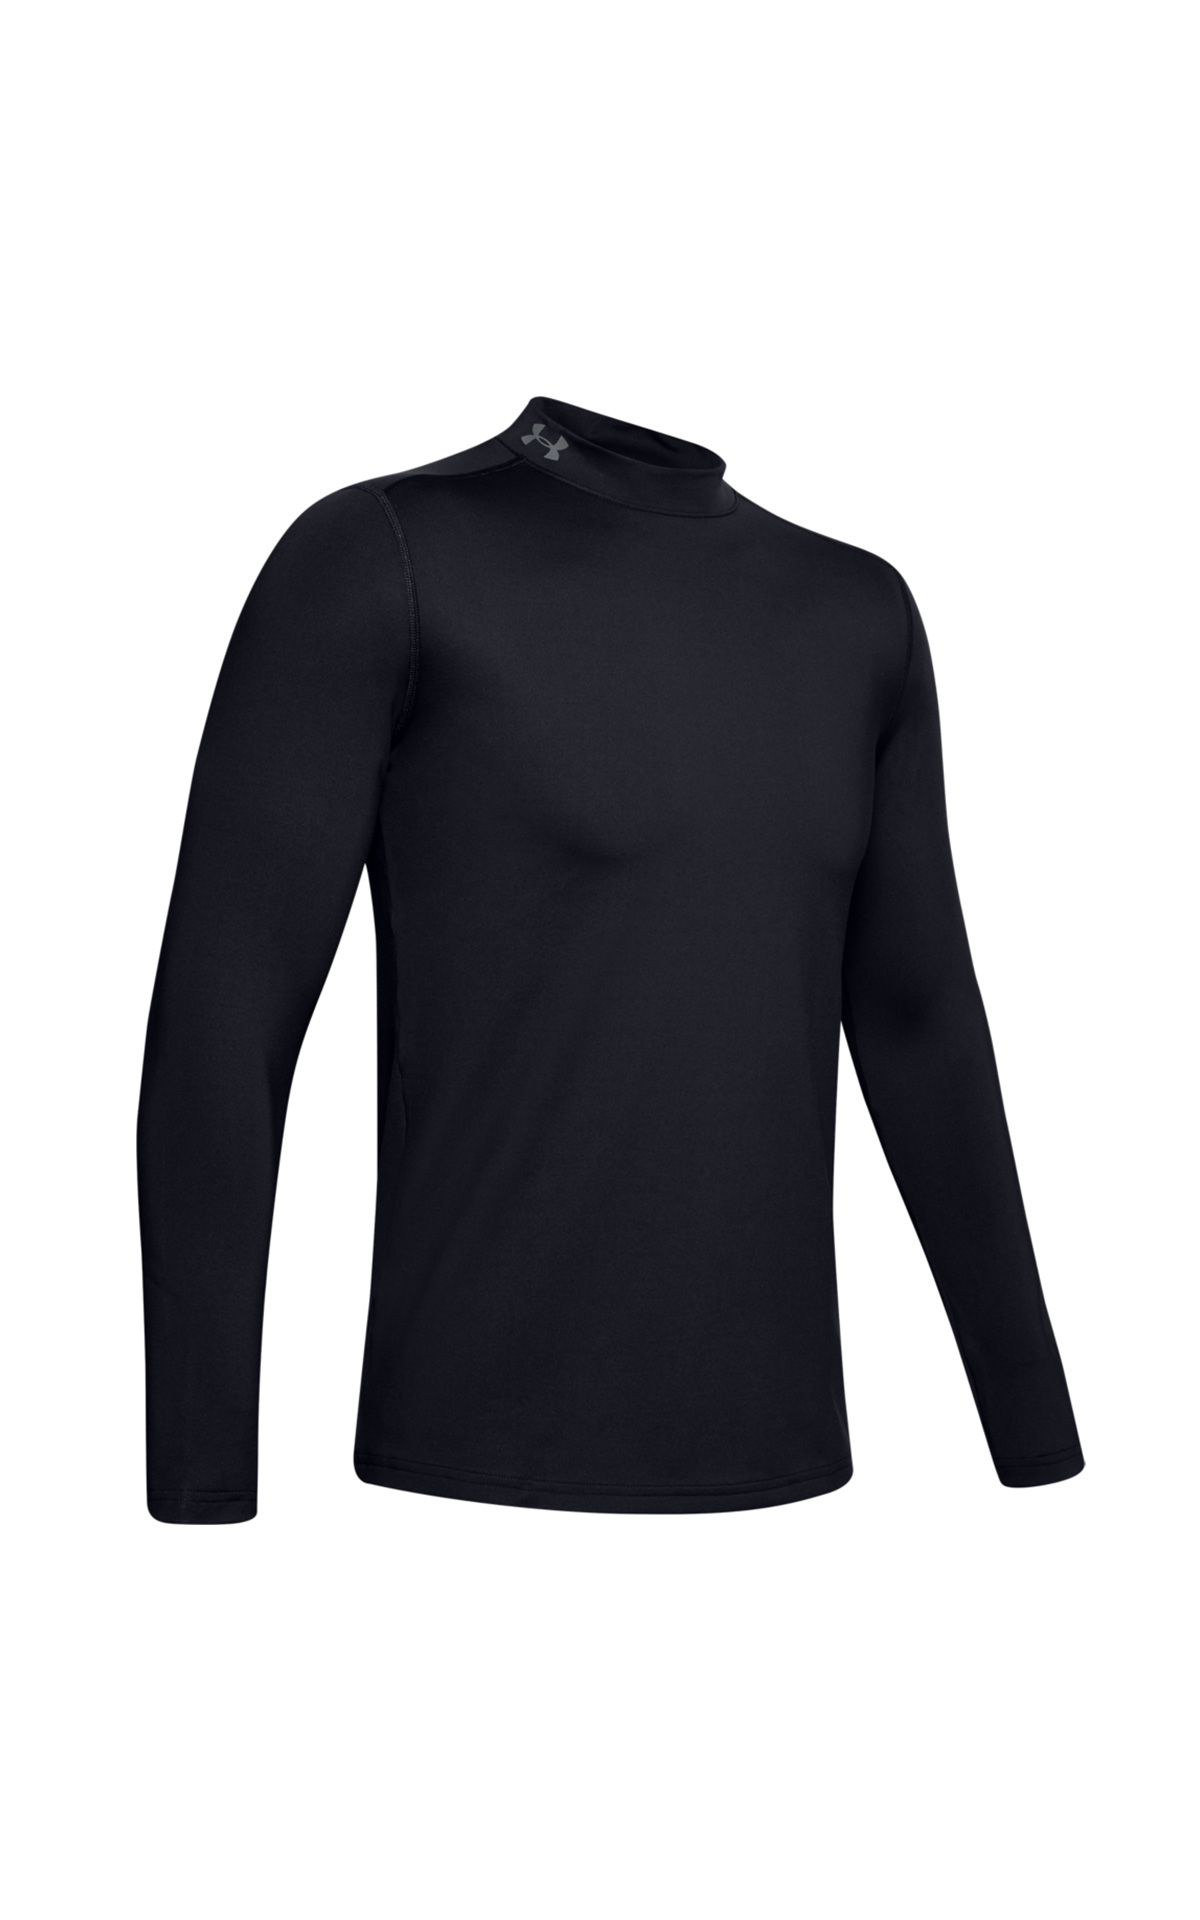 Under Armour Men's Cold gear armour mock